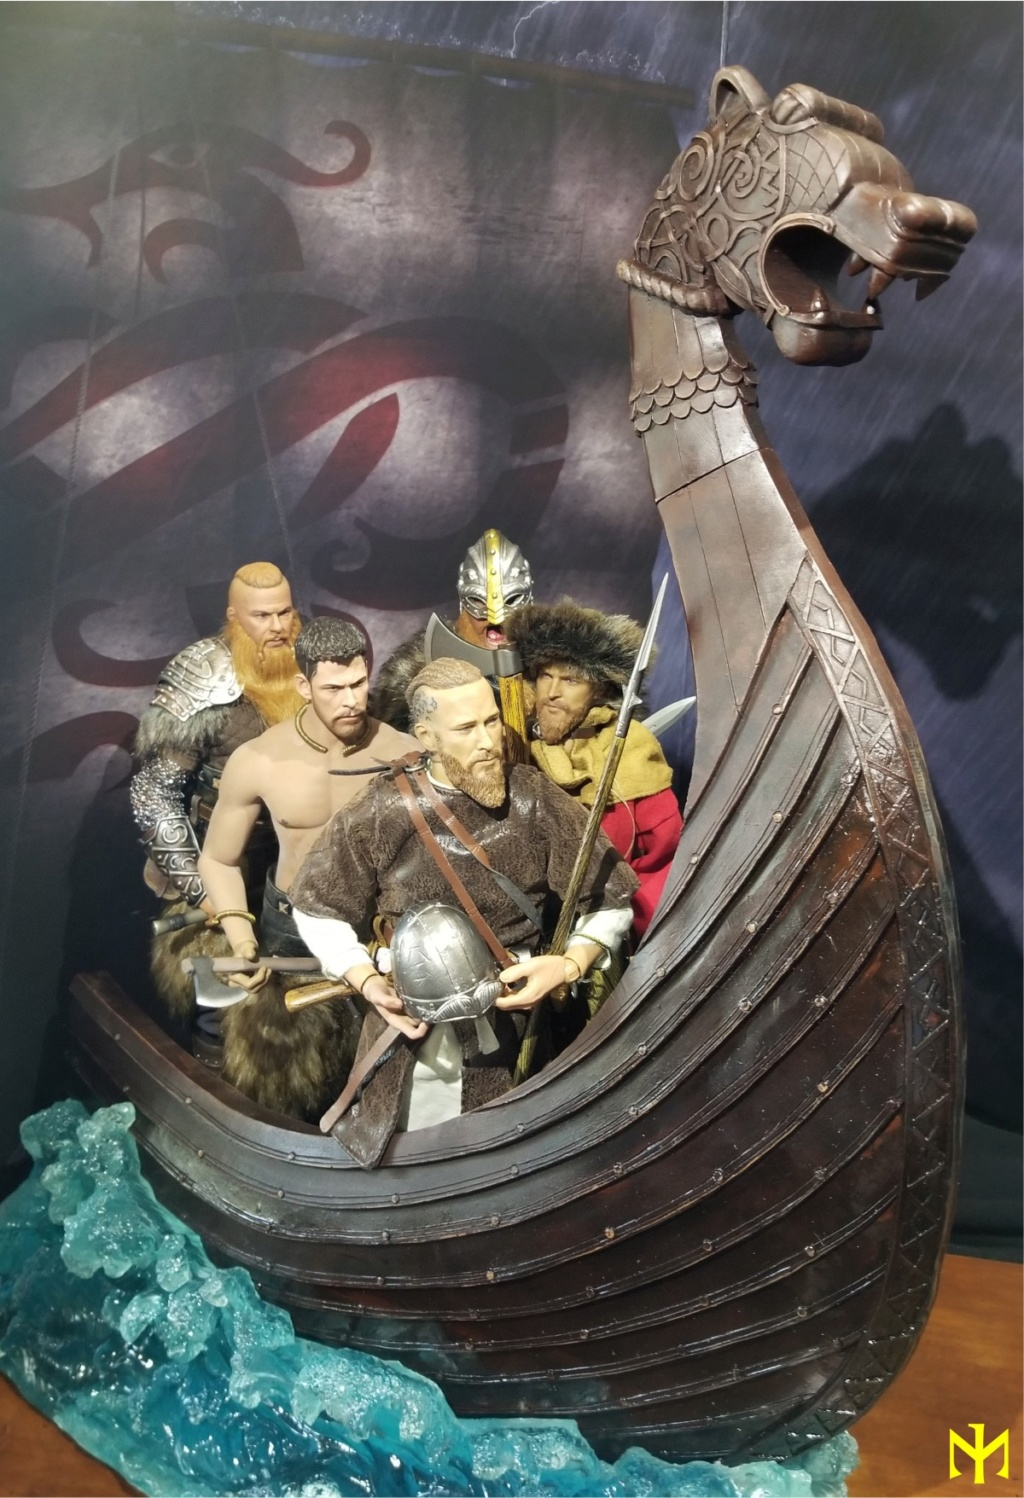 vikings - Vikings Vanquisher Viking Ship Diorama Coomodel Review Viking41